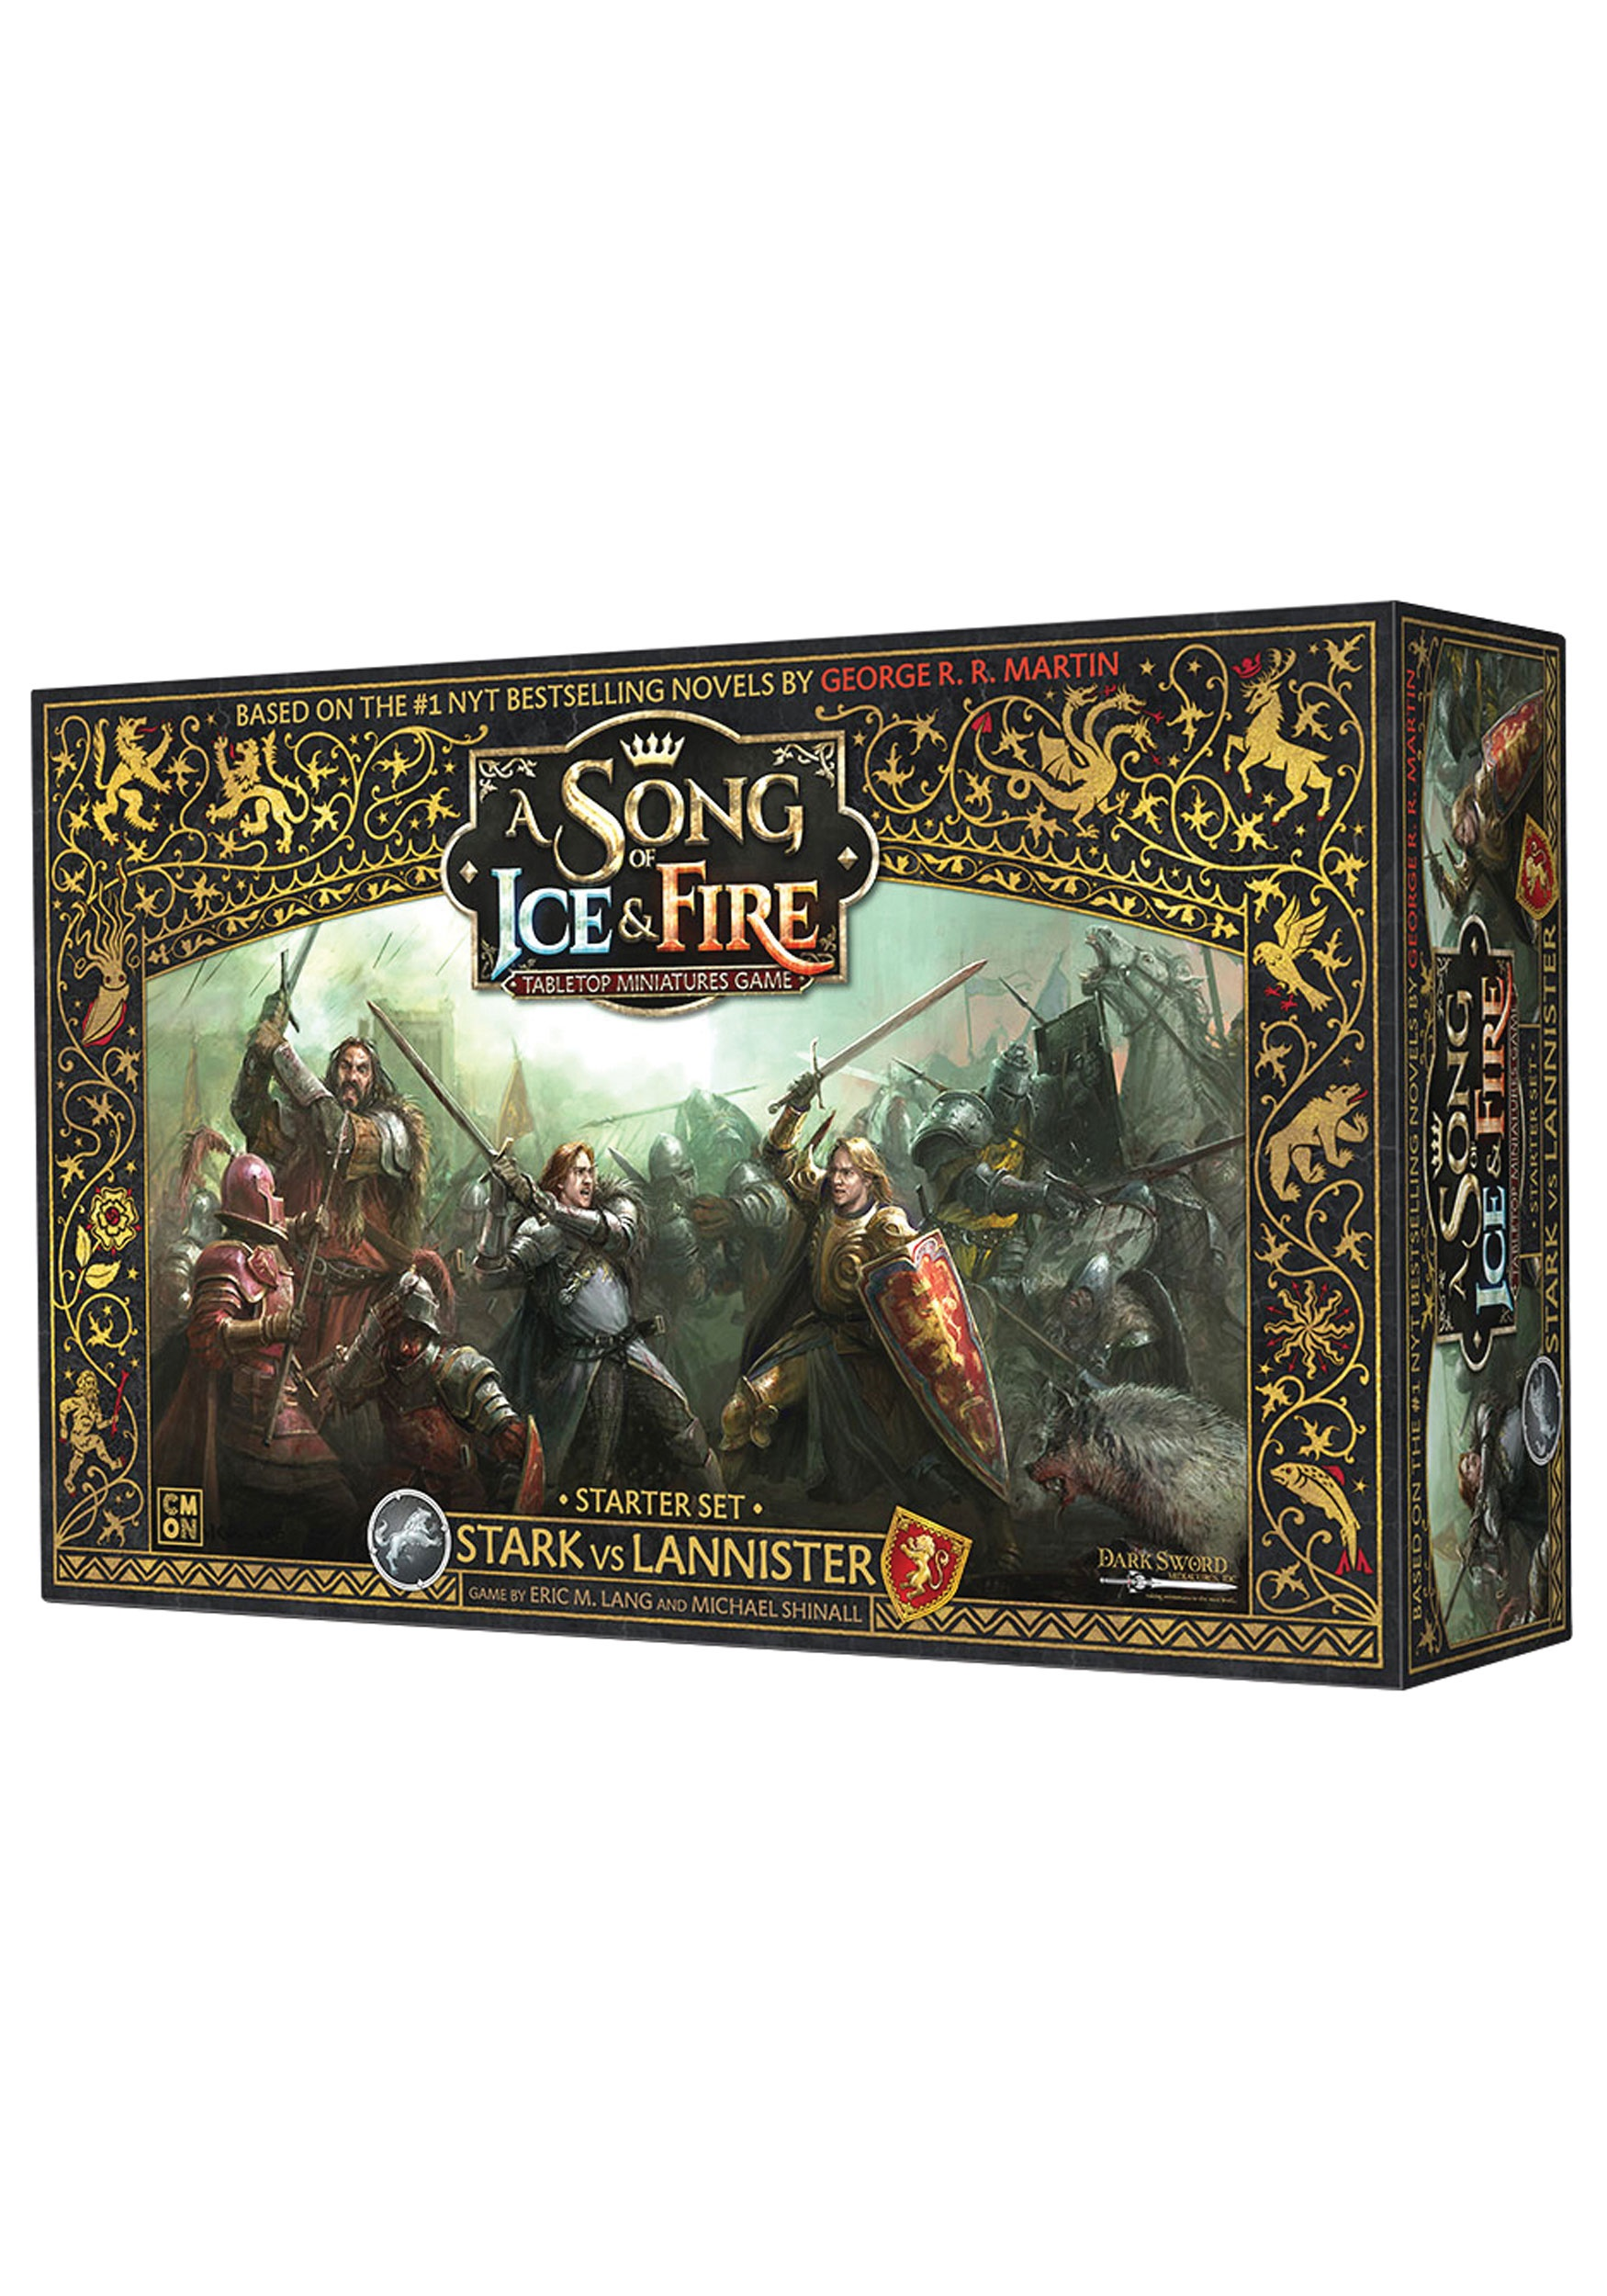 A Song of Ice & Fire: Tabletop Miniatures Game Starter Set